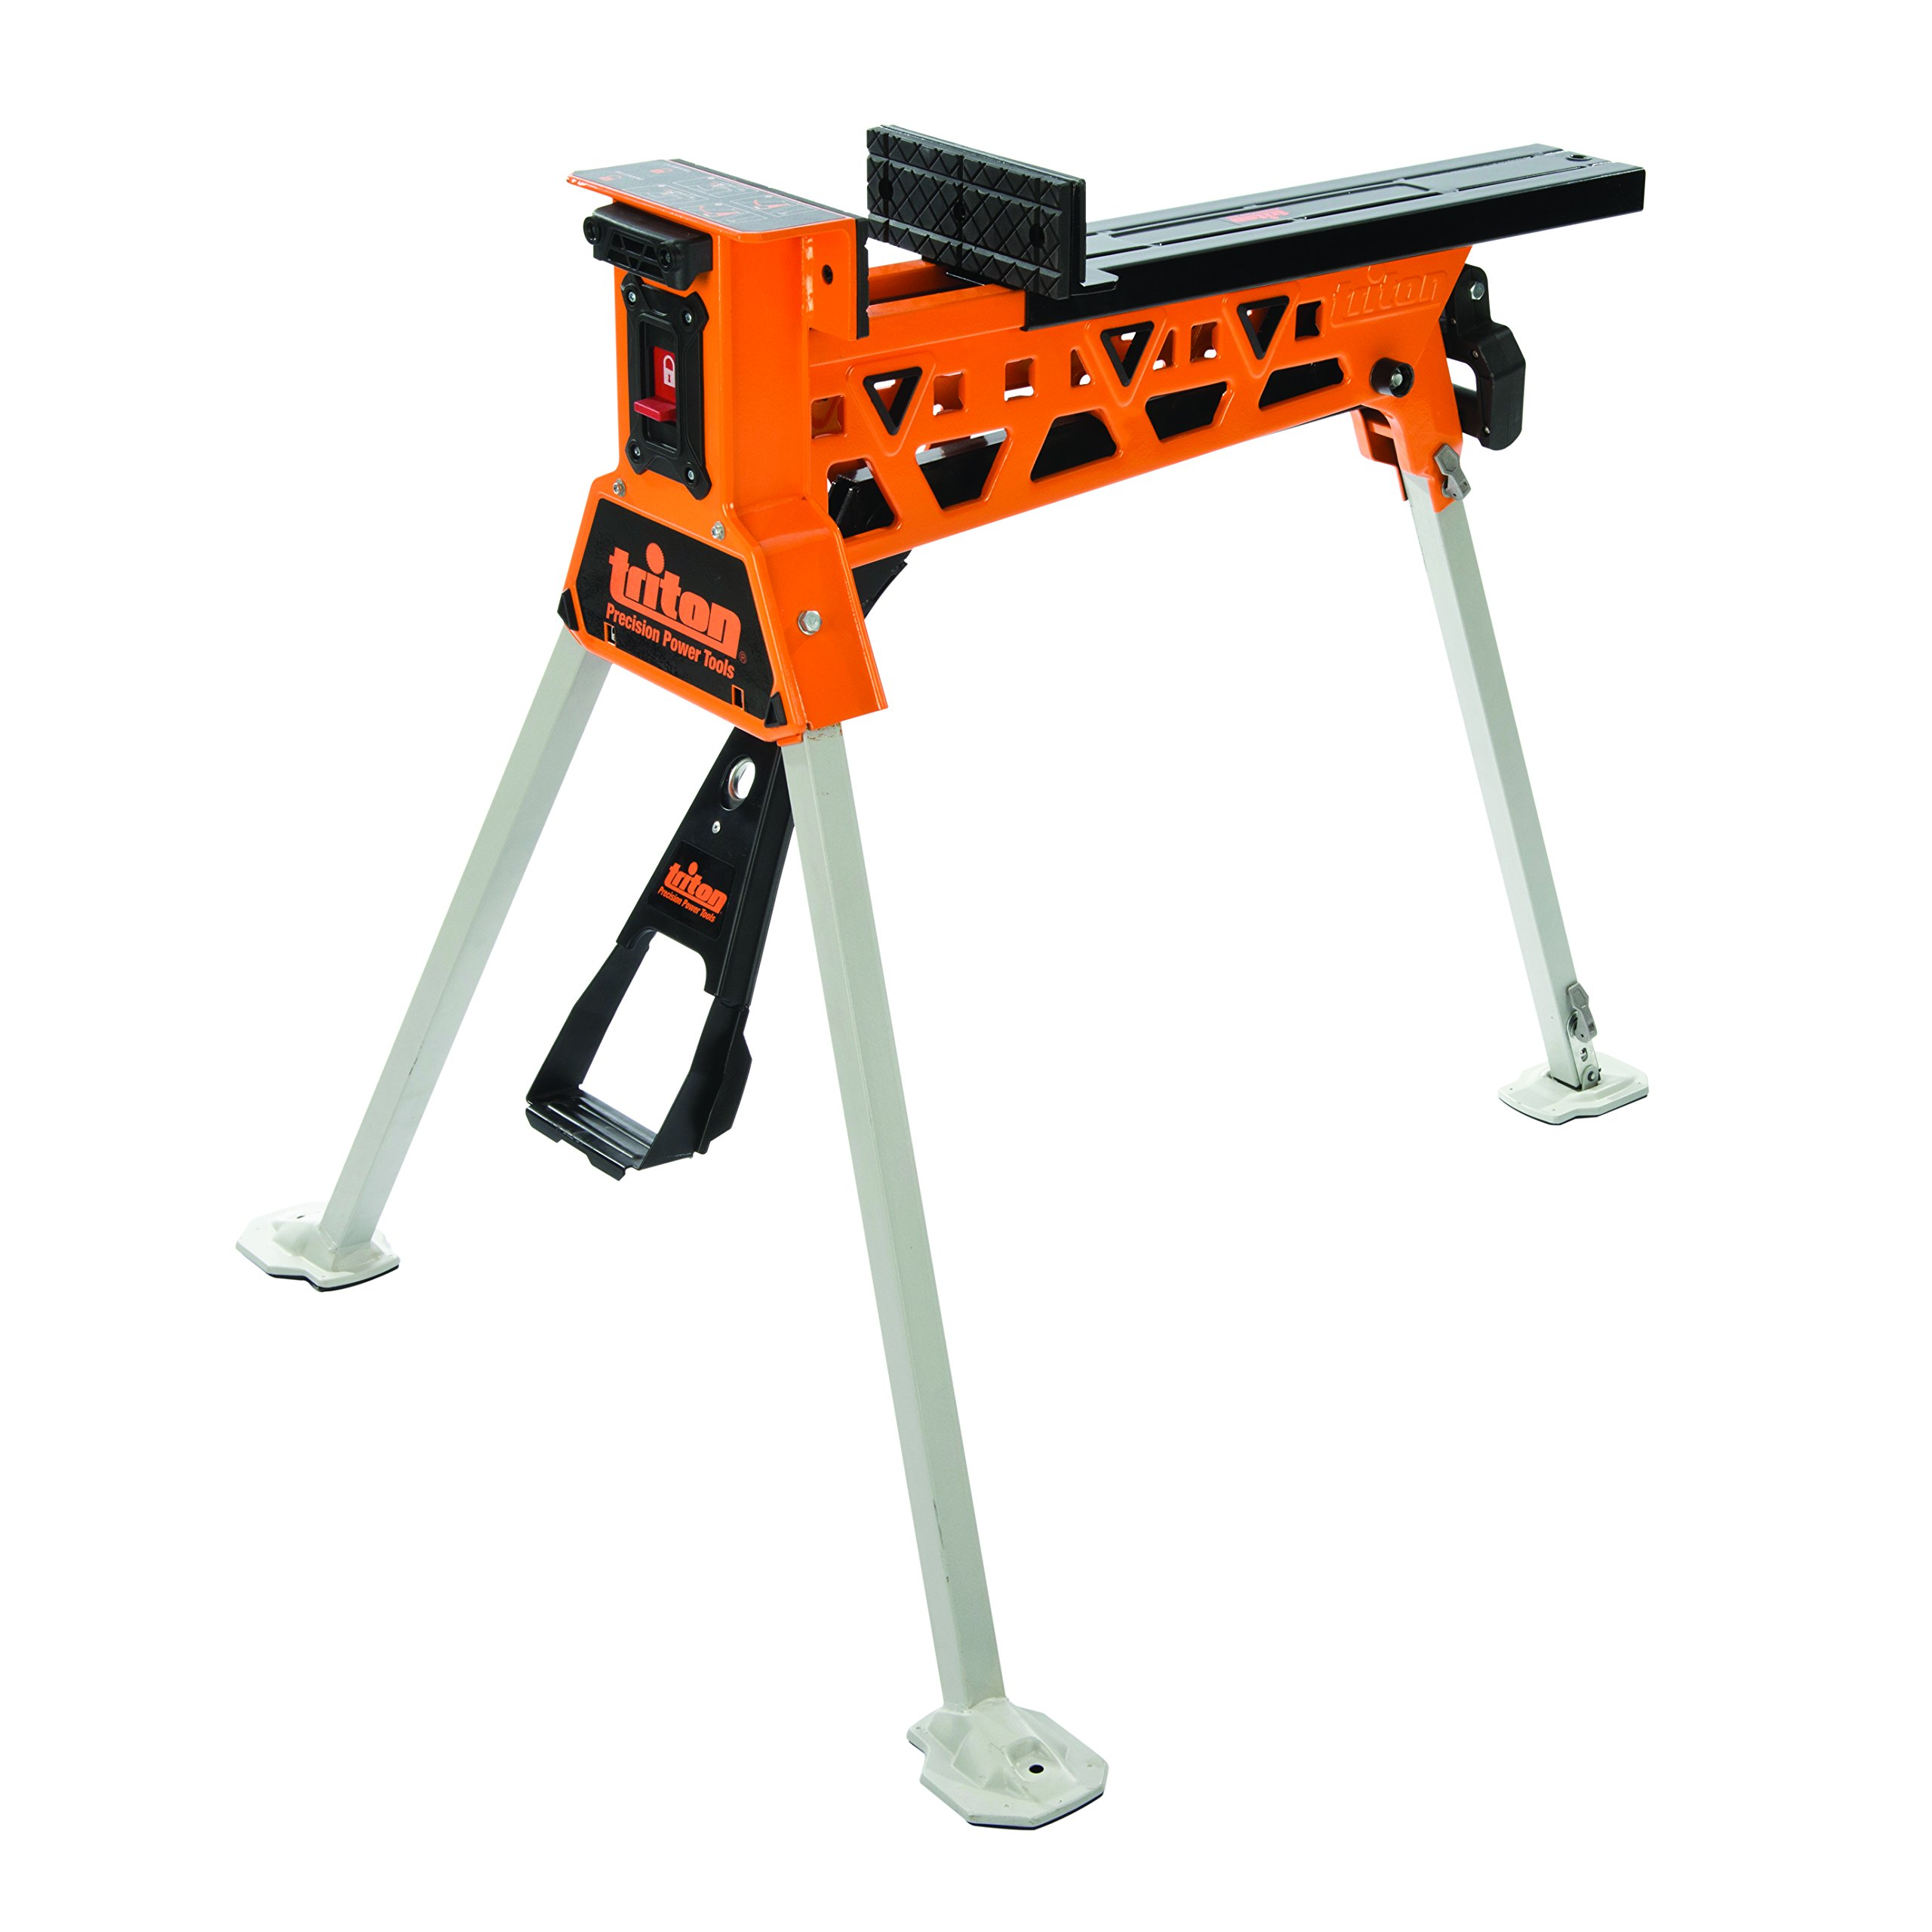 Triton SJA300 SuperJaws Portable Clamping System, XX-Large by Triton